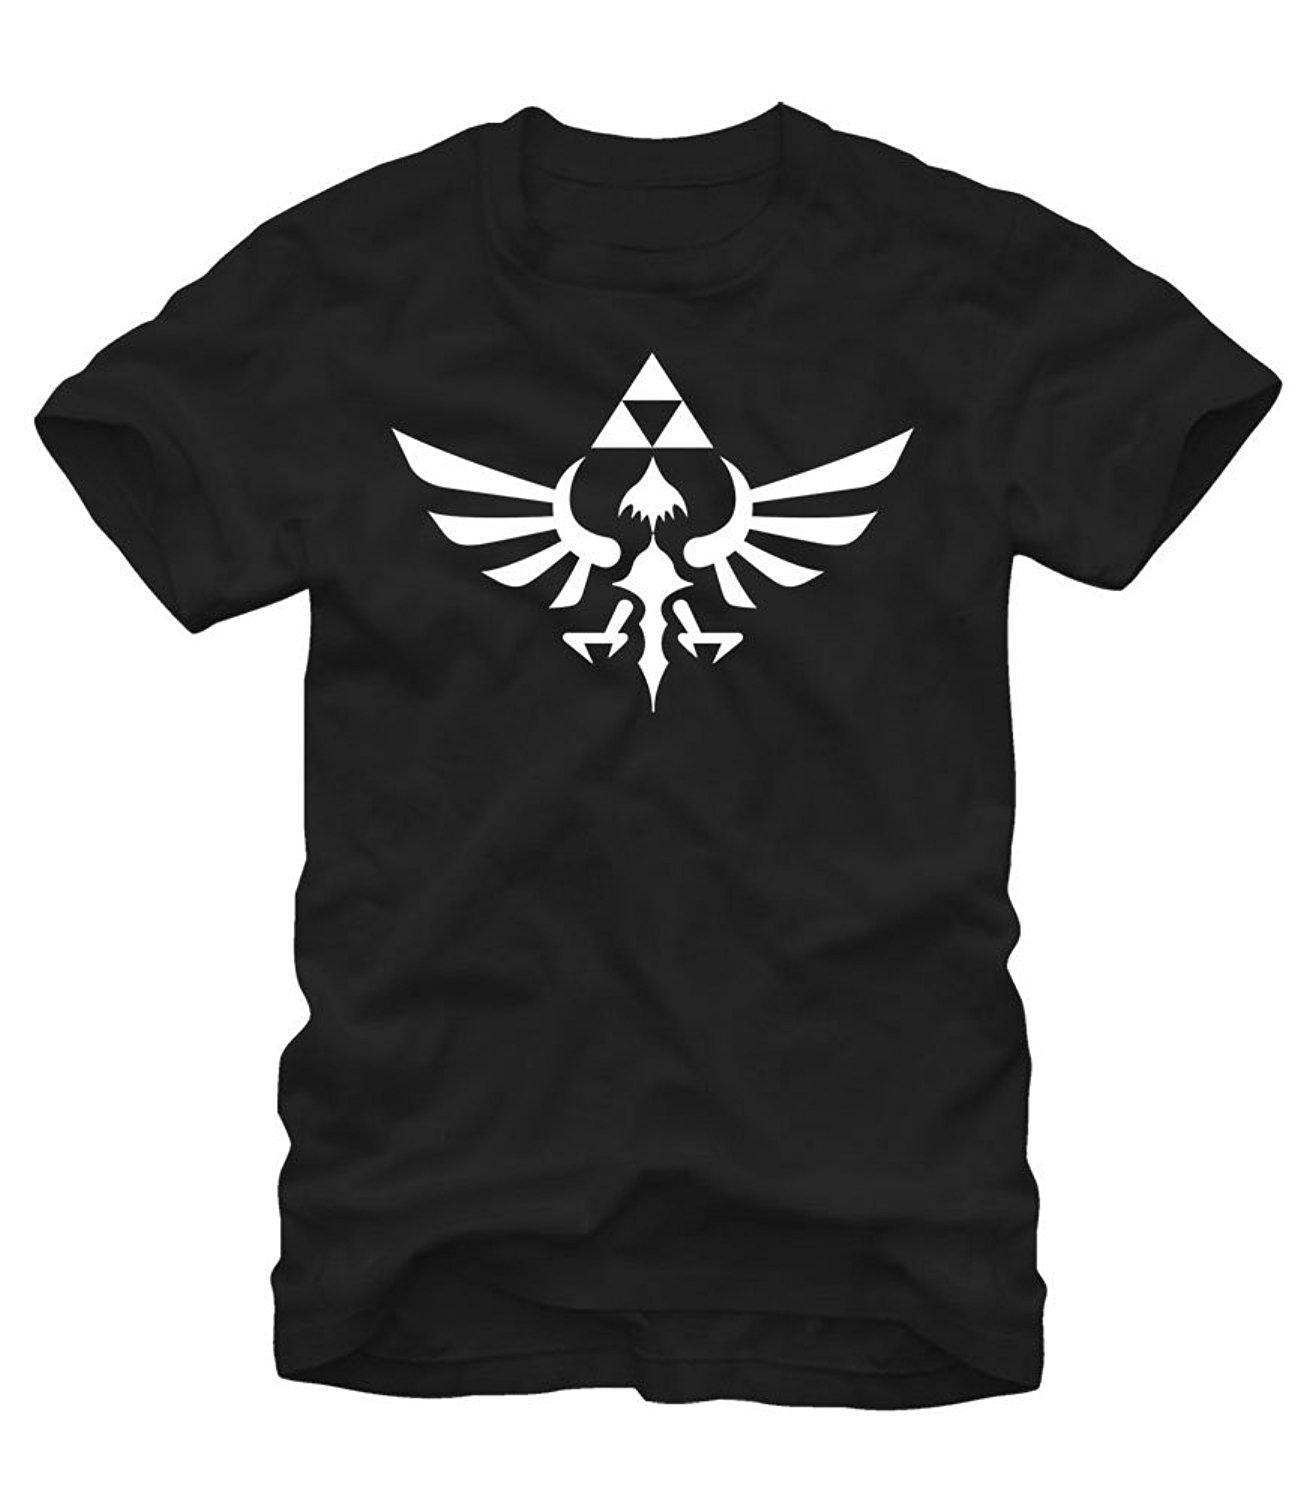 Zelda Legend Triumphant Triforce Camicia Uomo T Shirt Novità O - Neck Tops Pre - Cotton Tee Shirt per uomo Movie T-shirt Top Tee